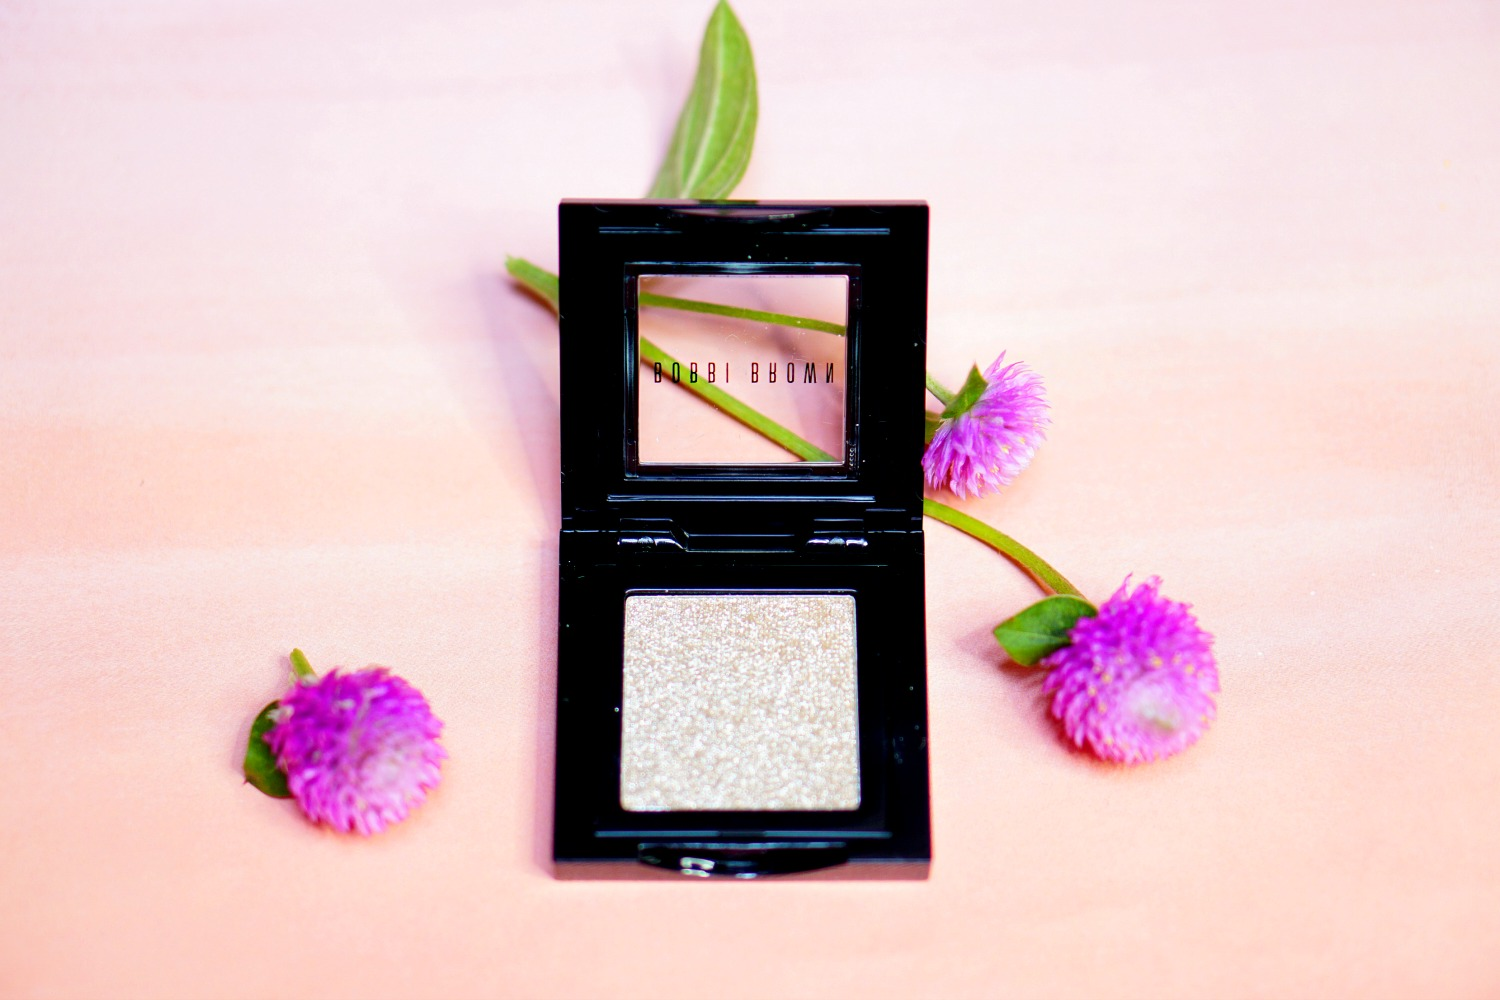 Bobbi Brown Sparkle Eye Shadow review